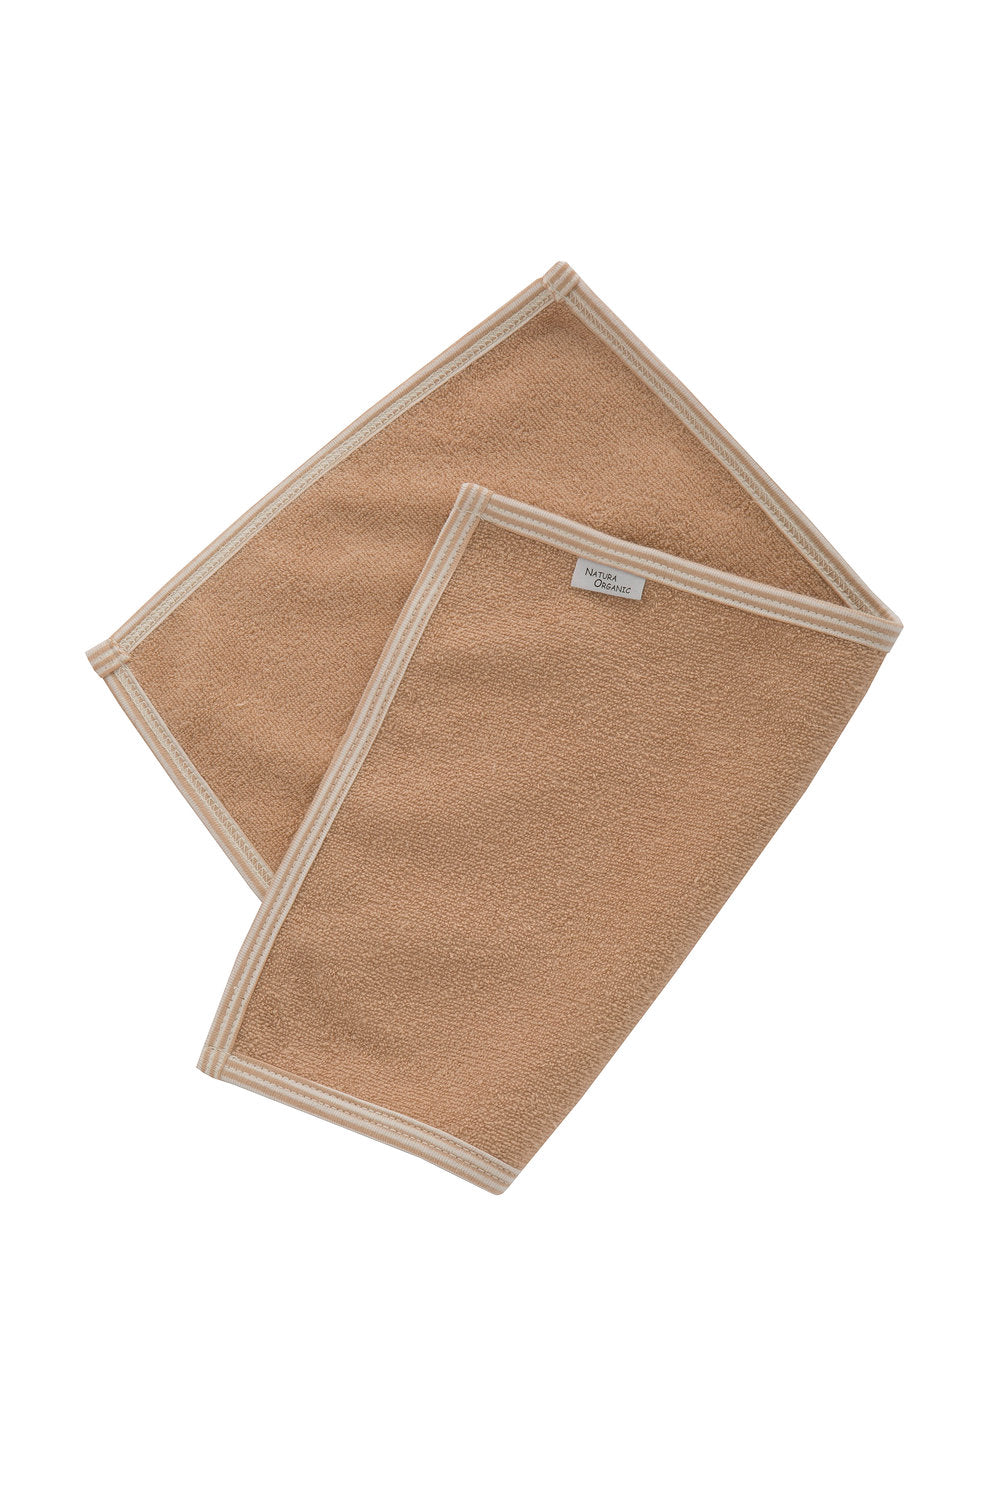 Organic Cotton / Bamboo Hand Towel - 2 pack